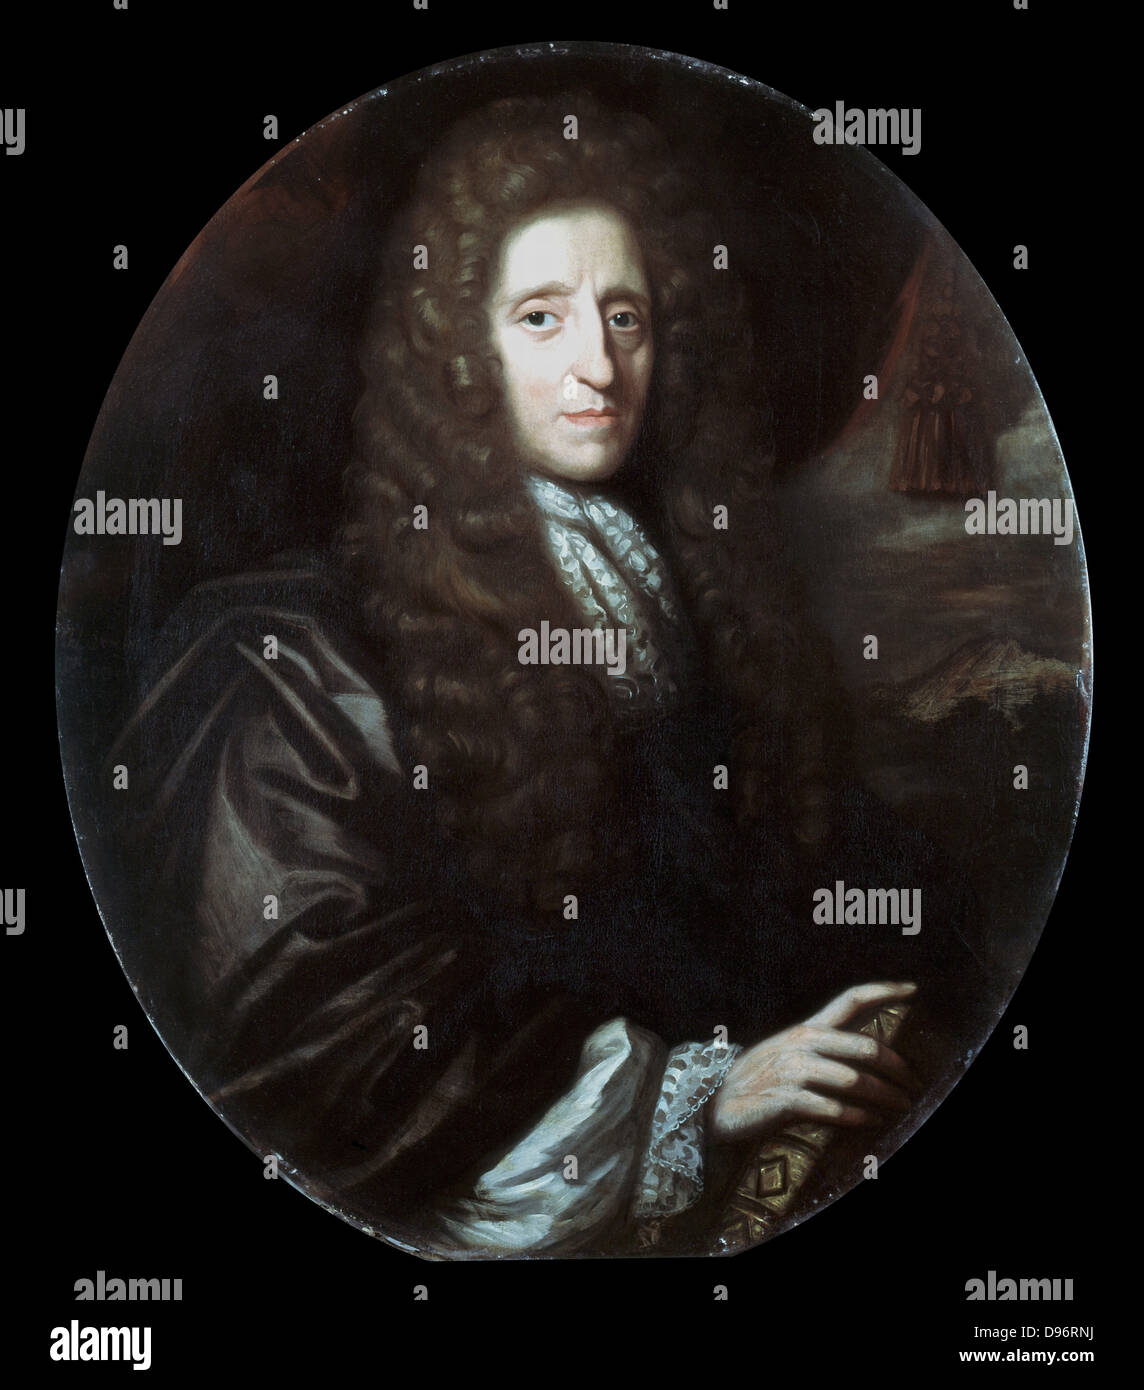 John Locke (1632-1704) English philosopher. Author of 'Essay Concerning Human Understanding' (1690).  Oil - Stock Image